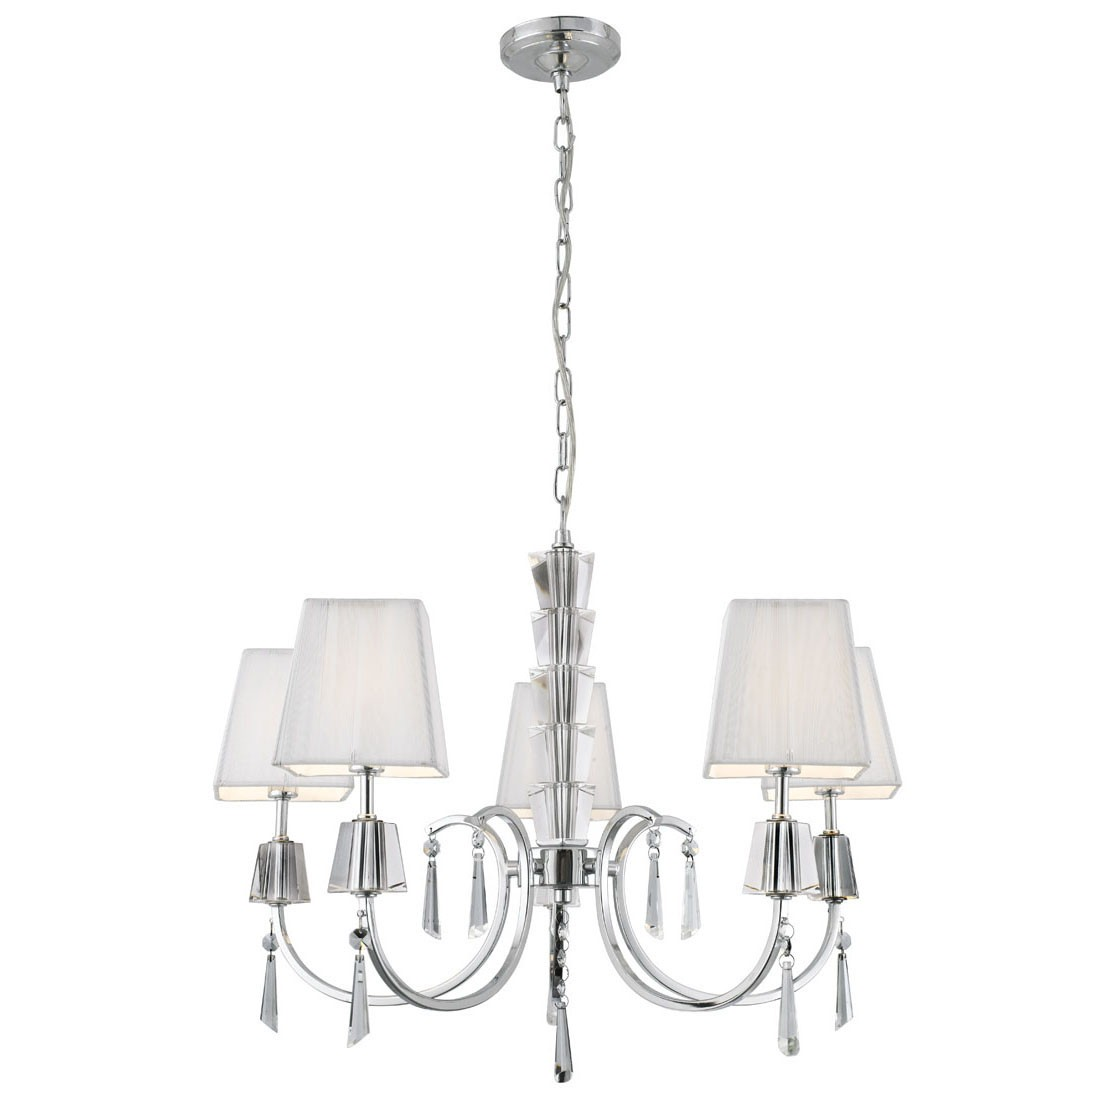 Searchlight Electric Sculptured Ice 8083 3cc Ceiling Light: HIBISCUS CHROME 5 LIGHT SEMI-FLUSH WITH CRYSTAL PETALS